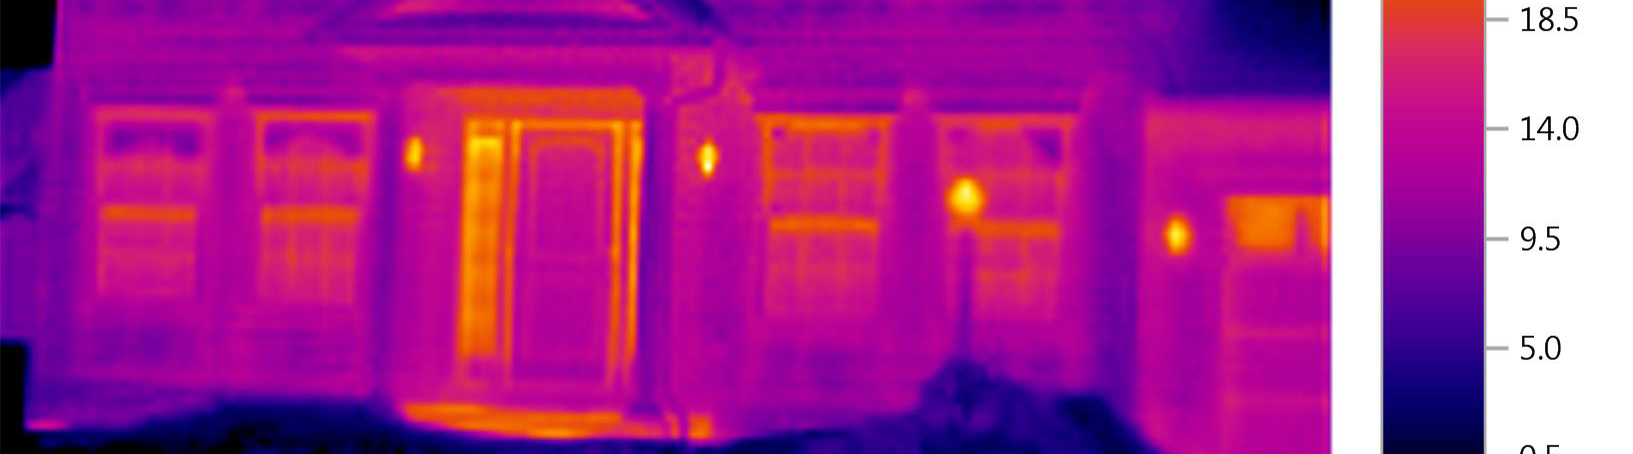 Infrared scan of exterior of home